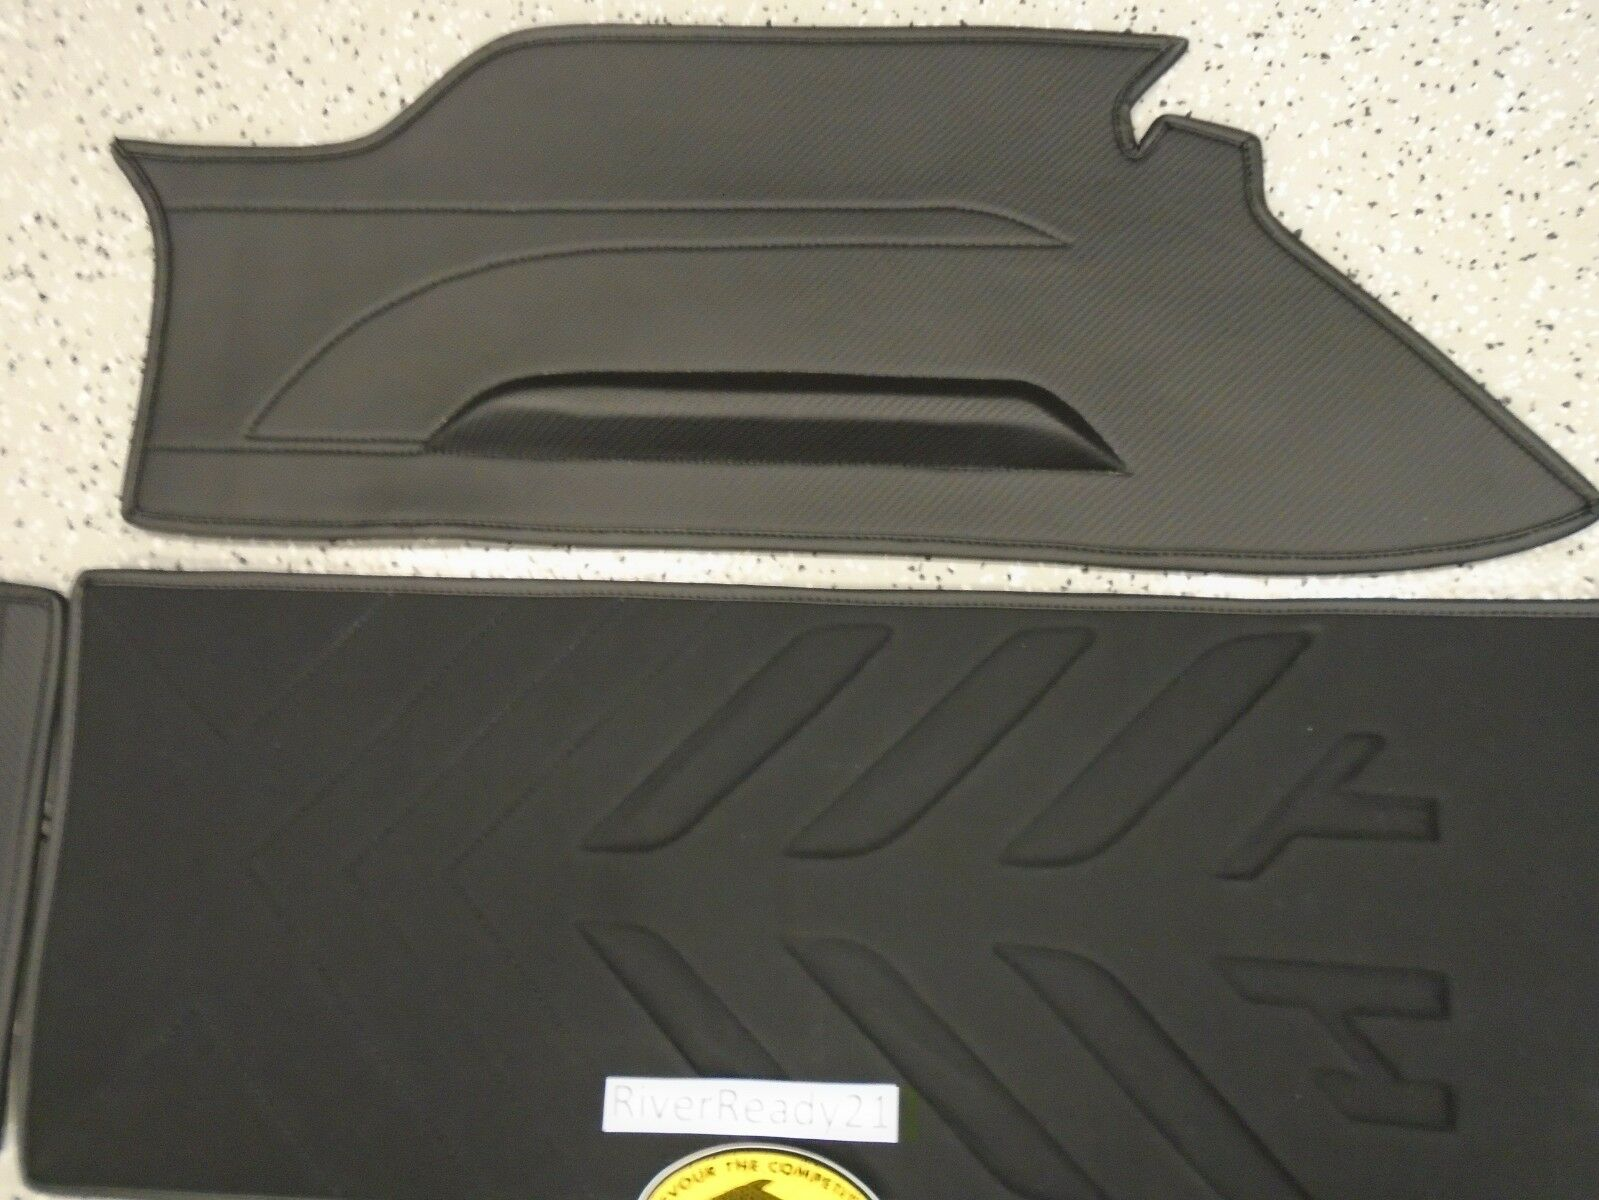 Kawasaki sxr 1500 Hydro-Turf Kit Premier Jet-Ski Black Carbon In stock AZ-HT681K